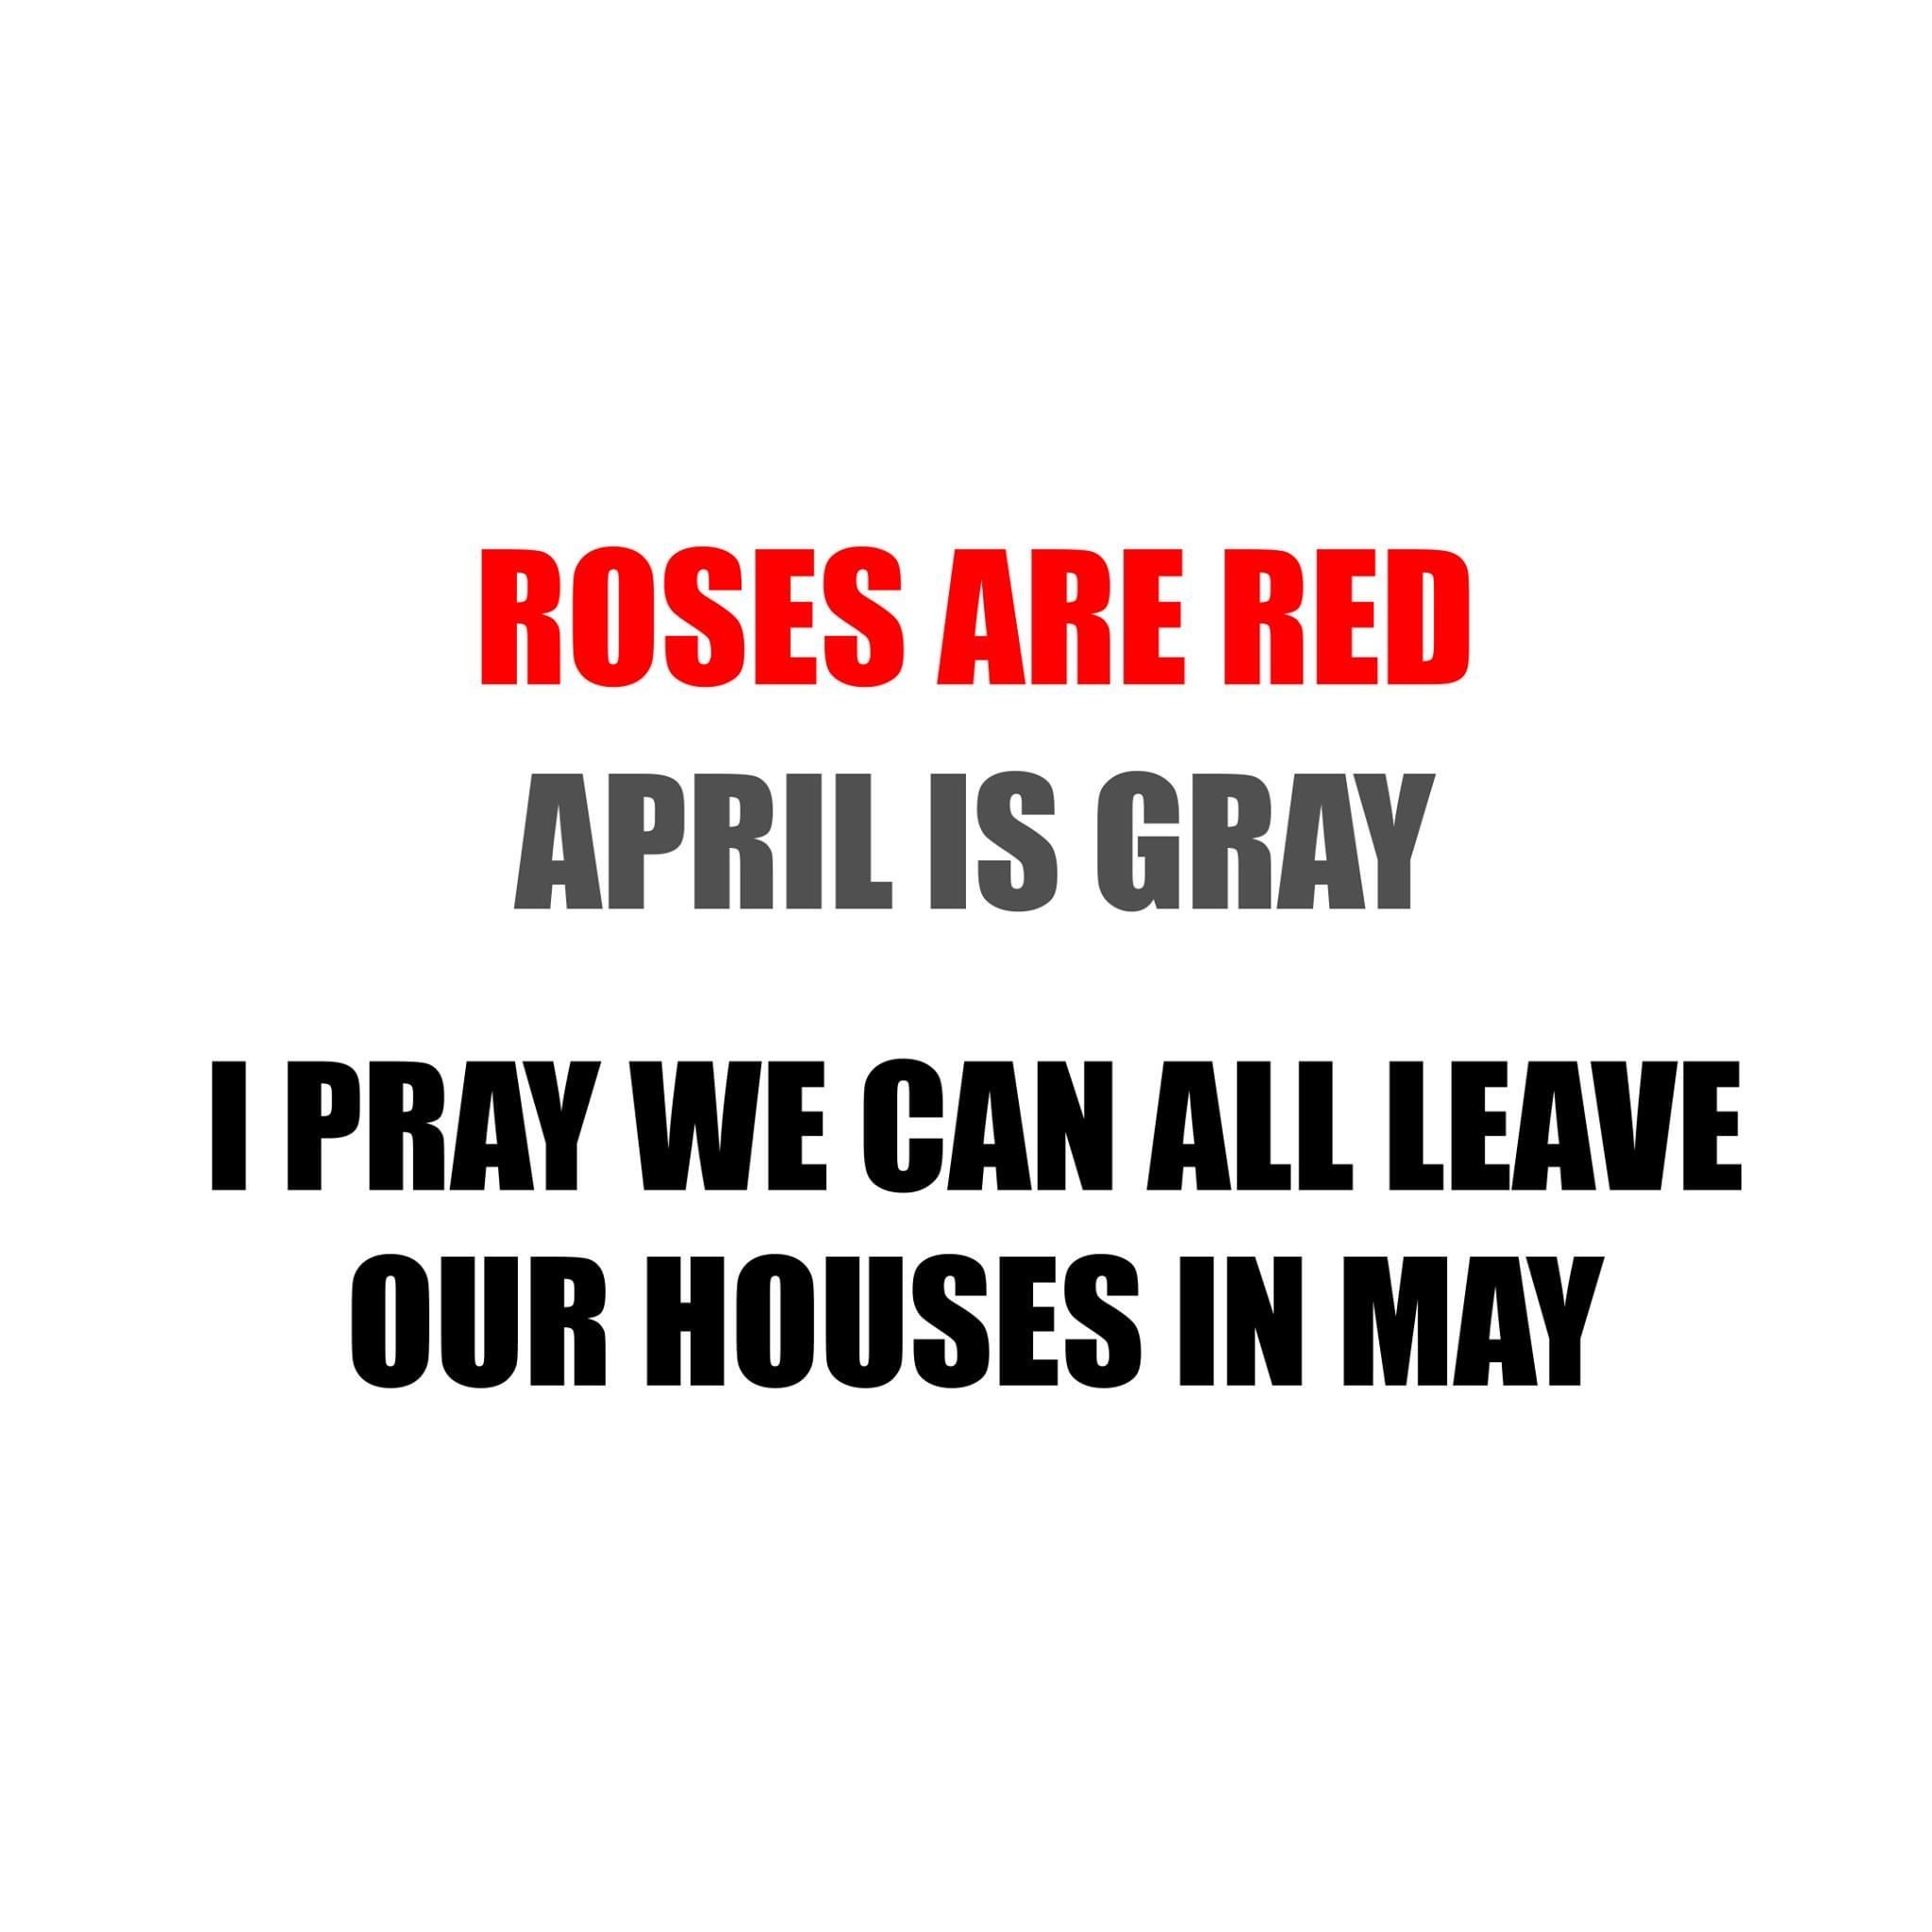 We can all leave our houses in May